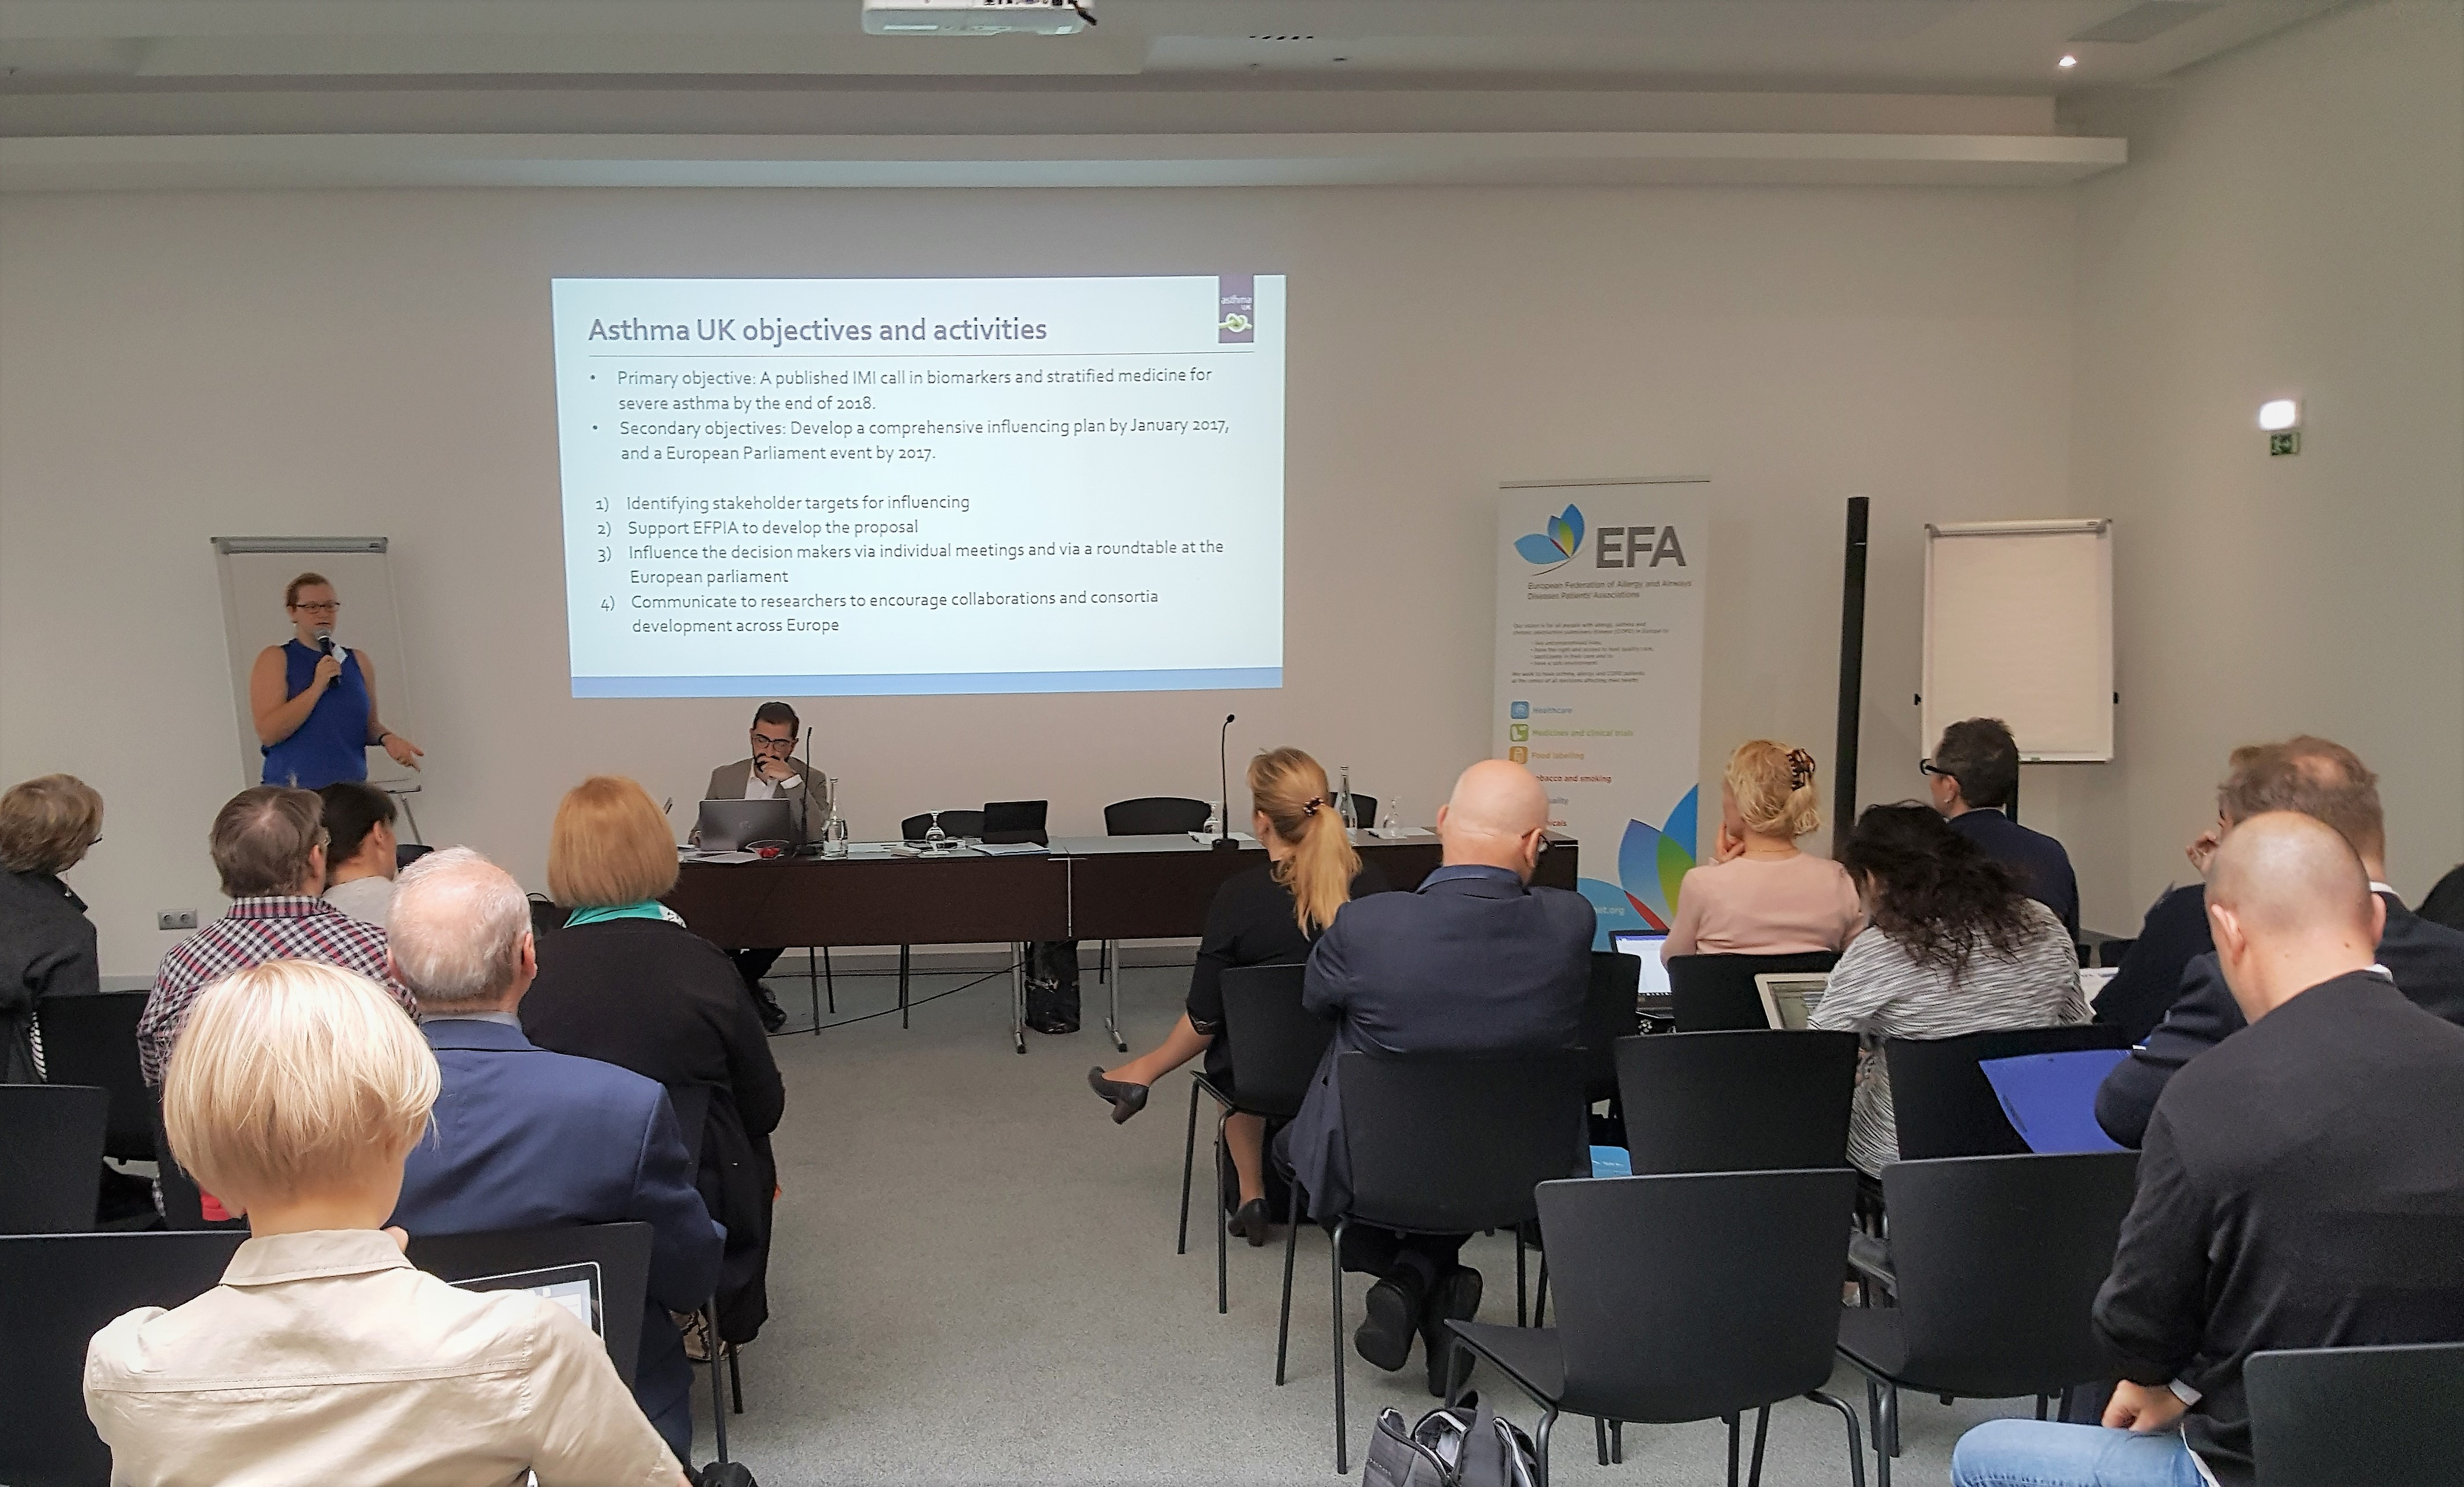 201805 EFA AGM Best practices Asthma UK2